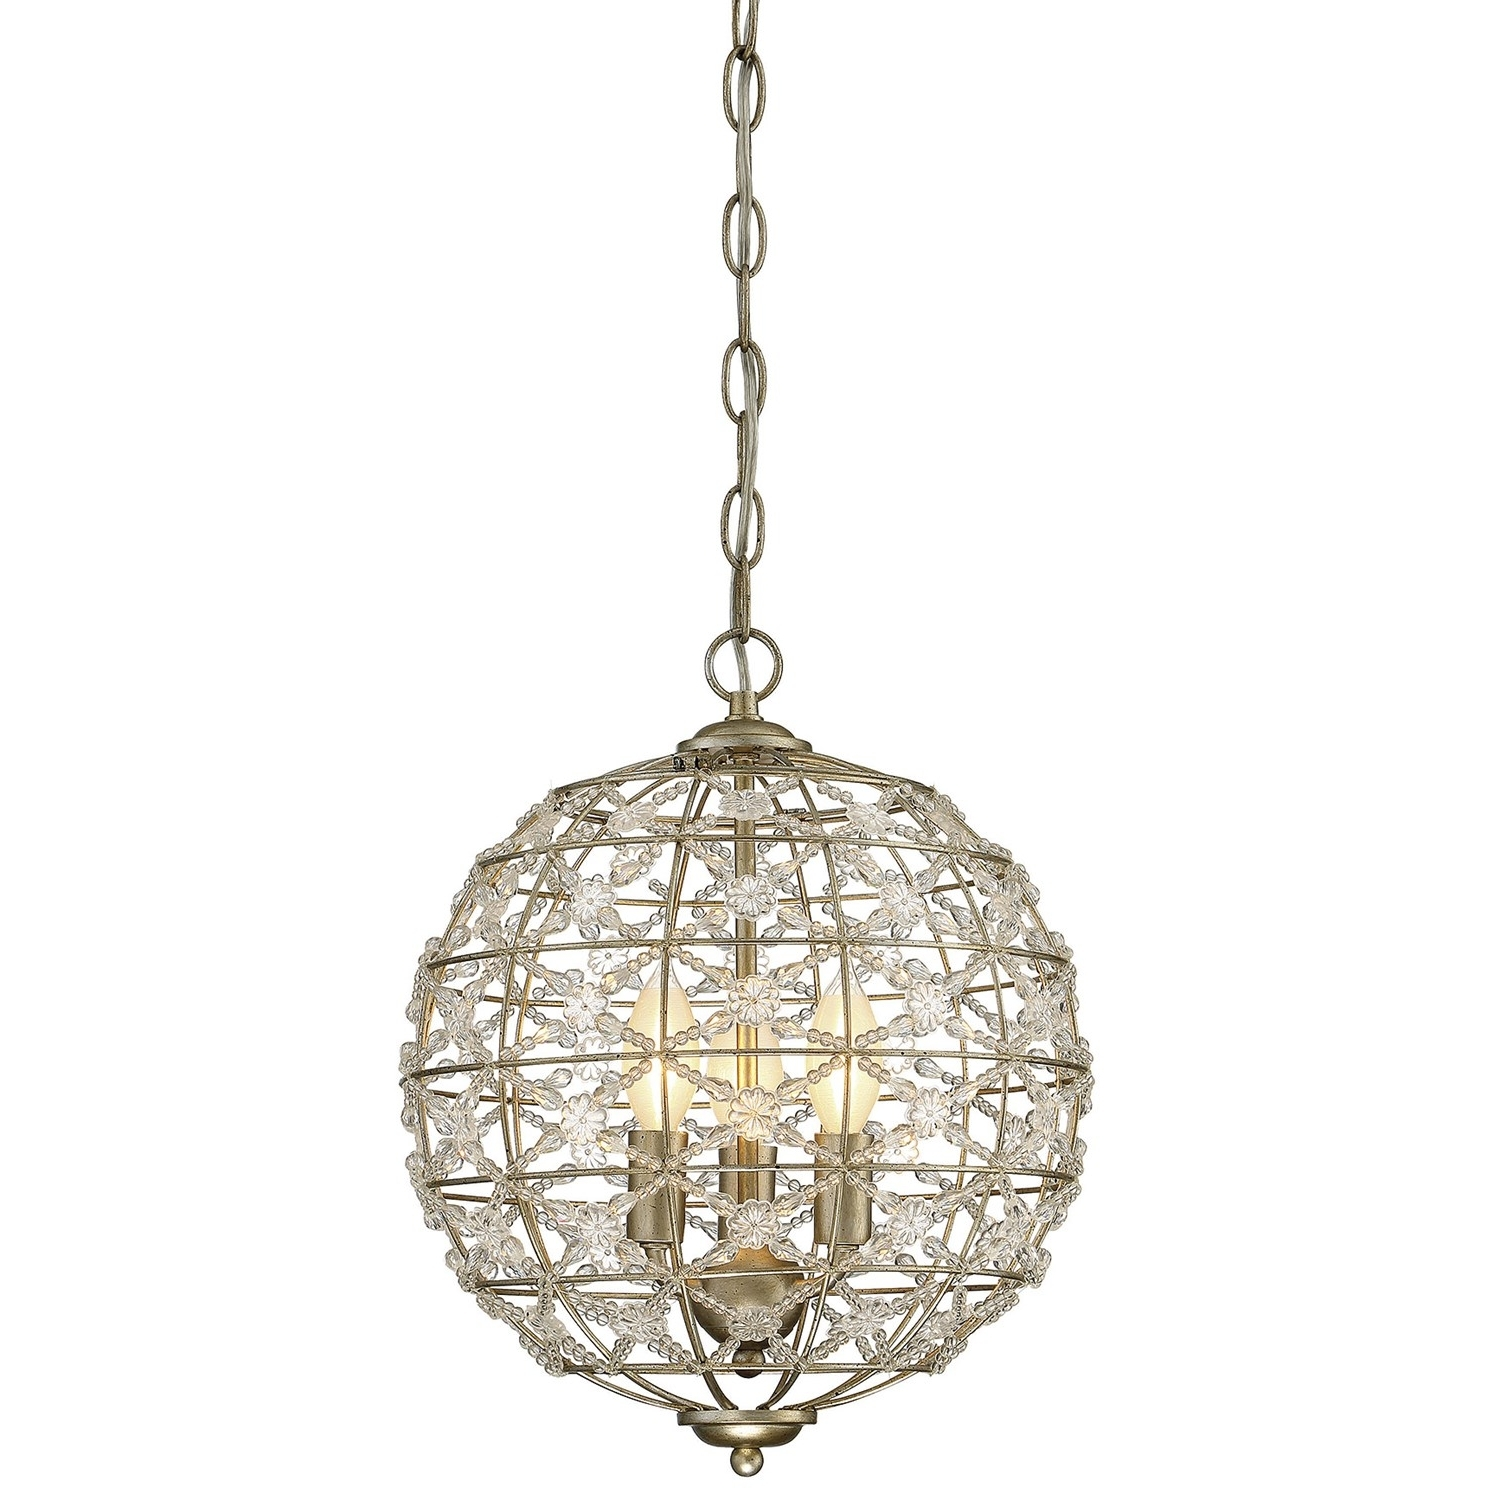 Best And Newest Chandeliers Design : Awesome Savoy House Chandelier Light Mini In With Turquoise Lantern Chandeliers (View 7 of 20)